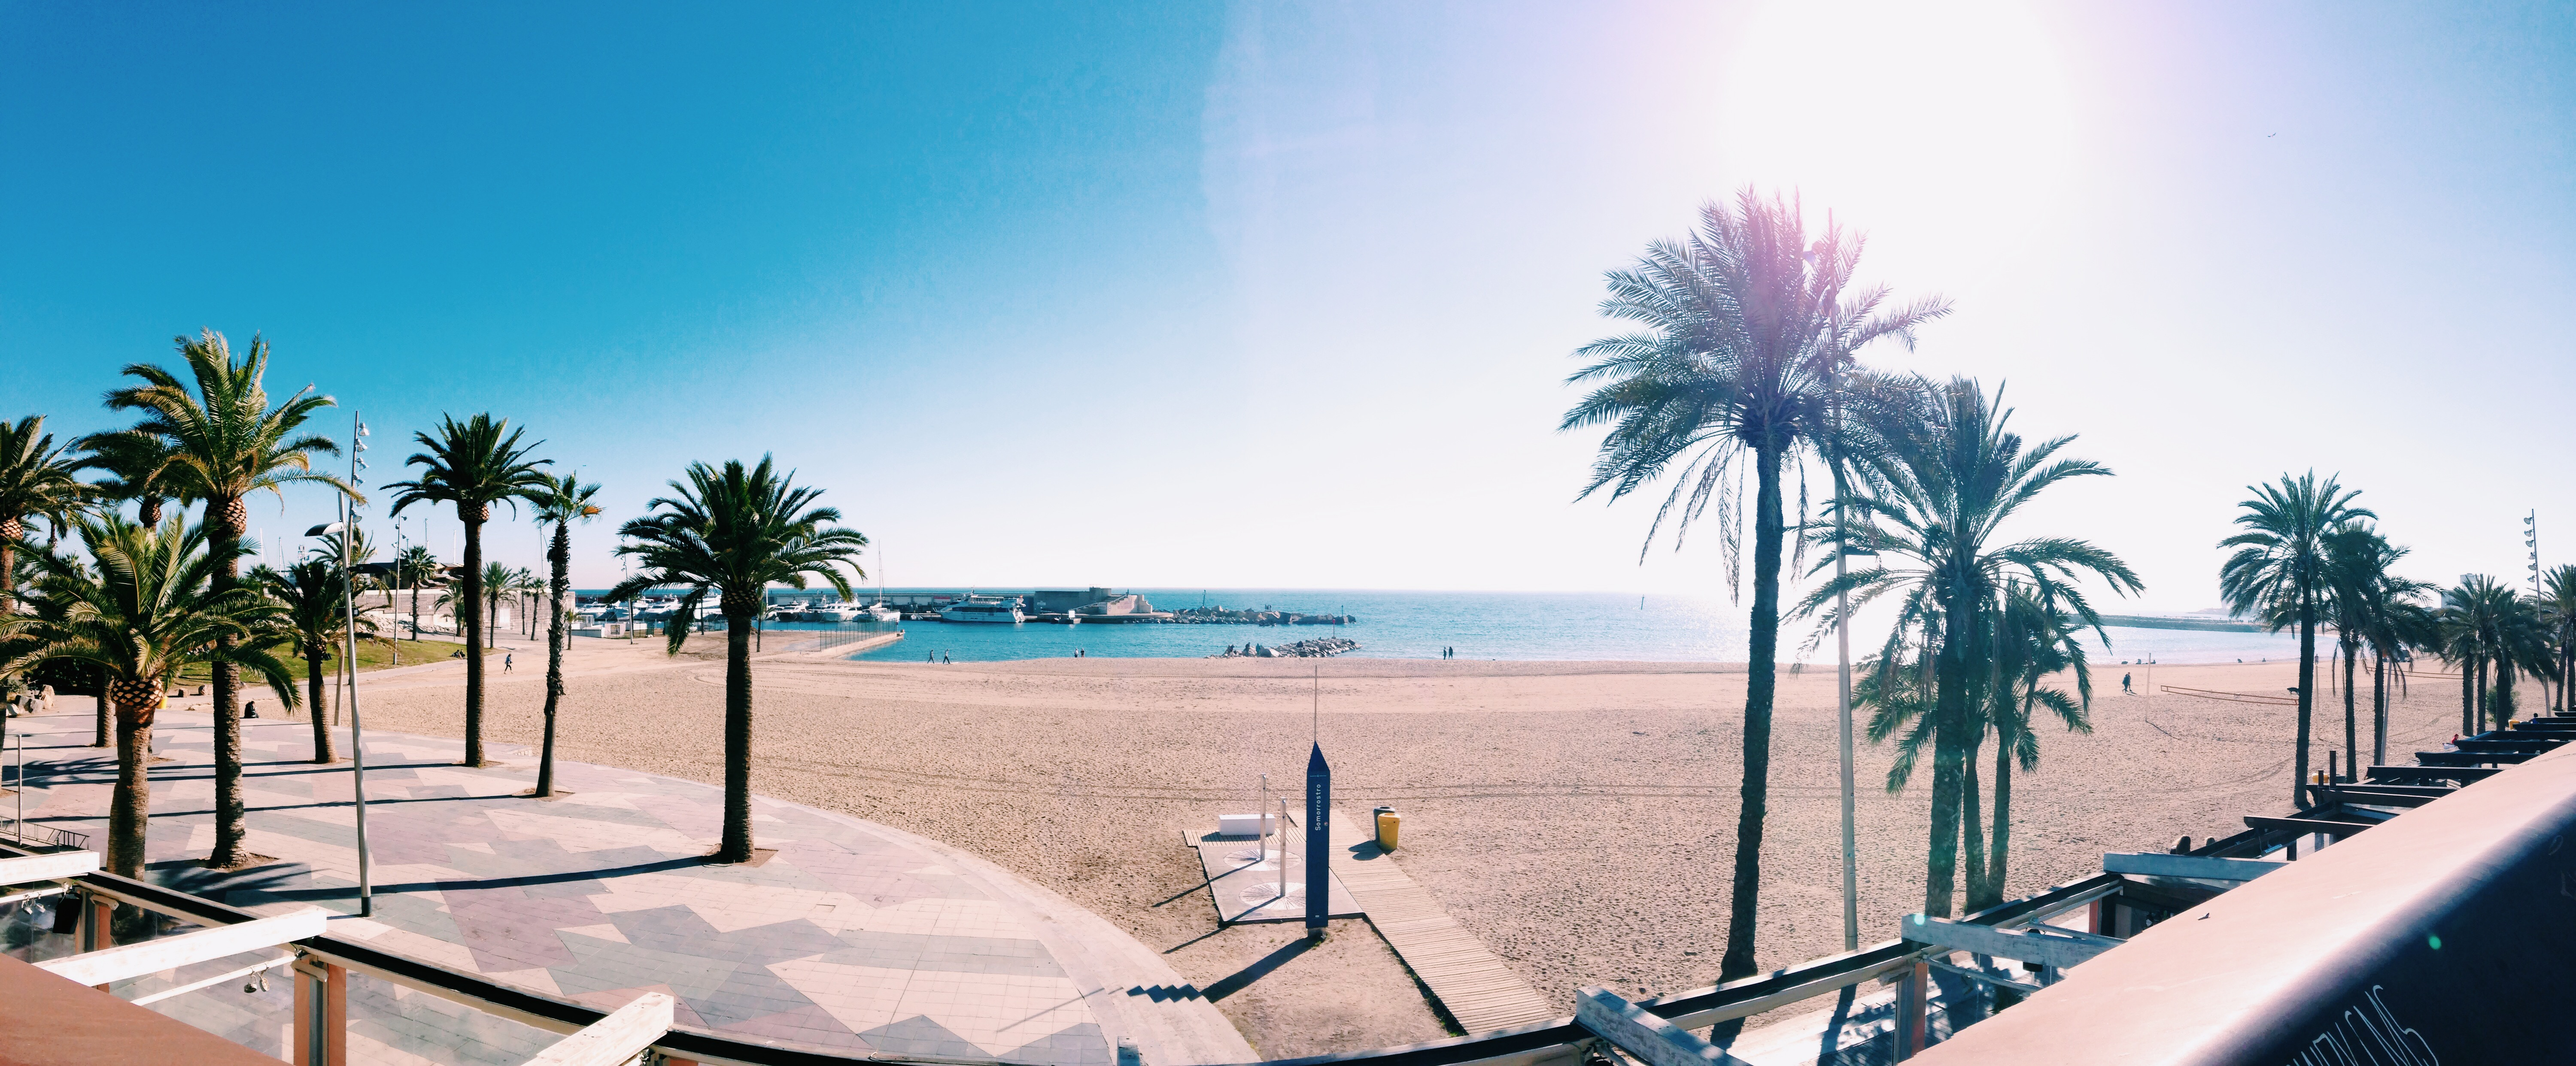 España is for Students: An Inside Look into Study Abroad ...